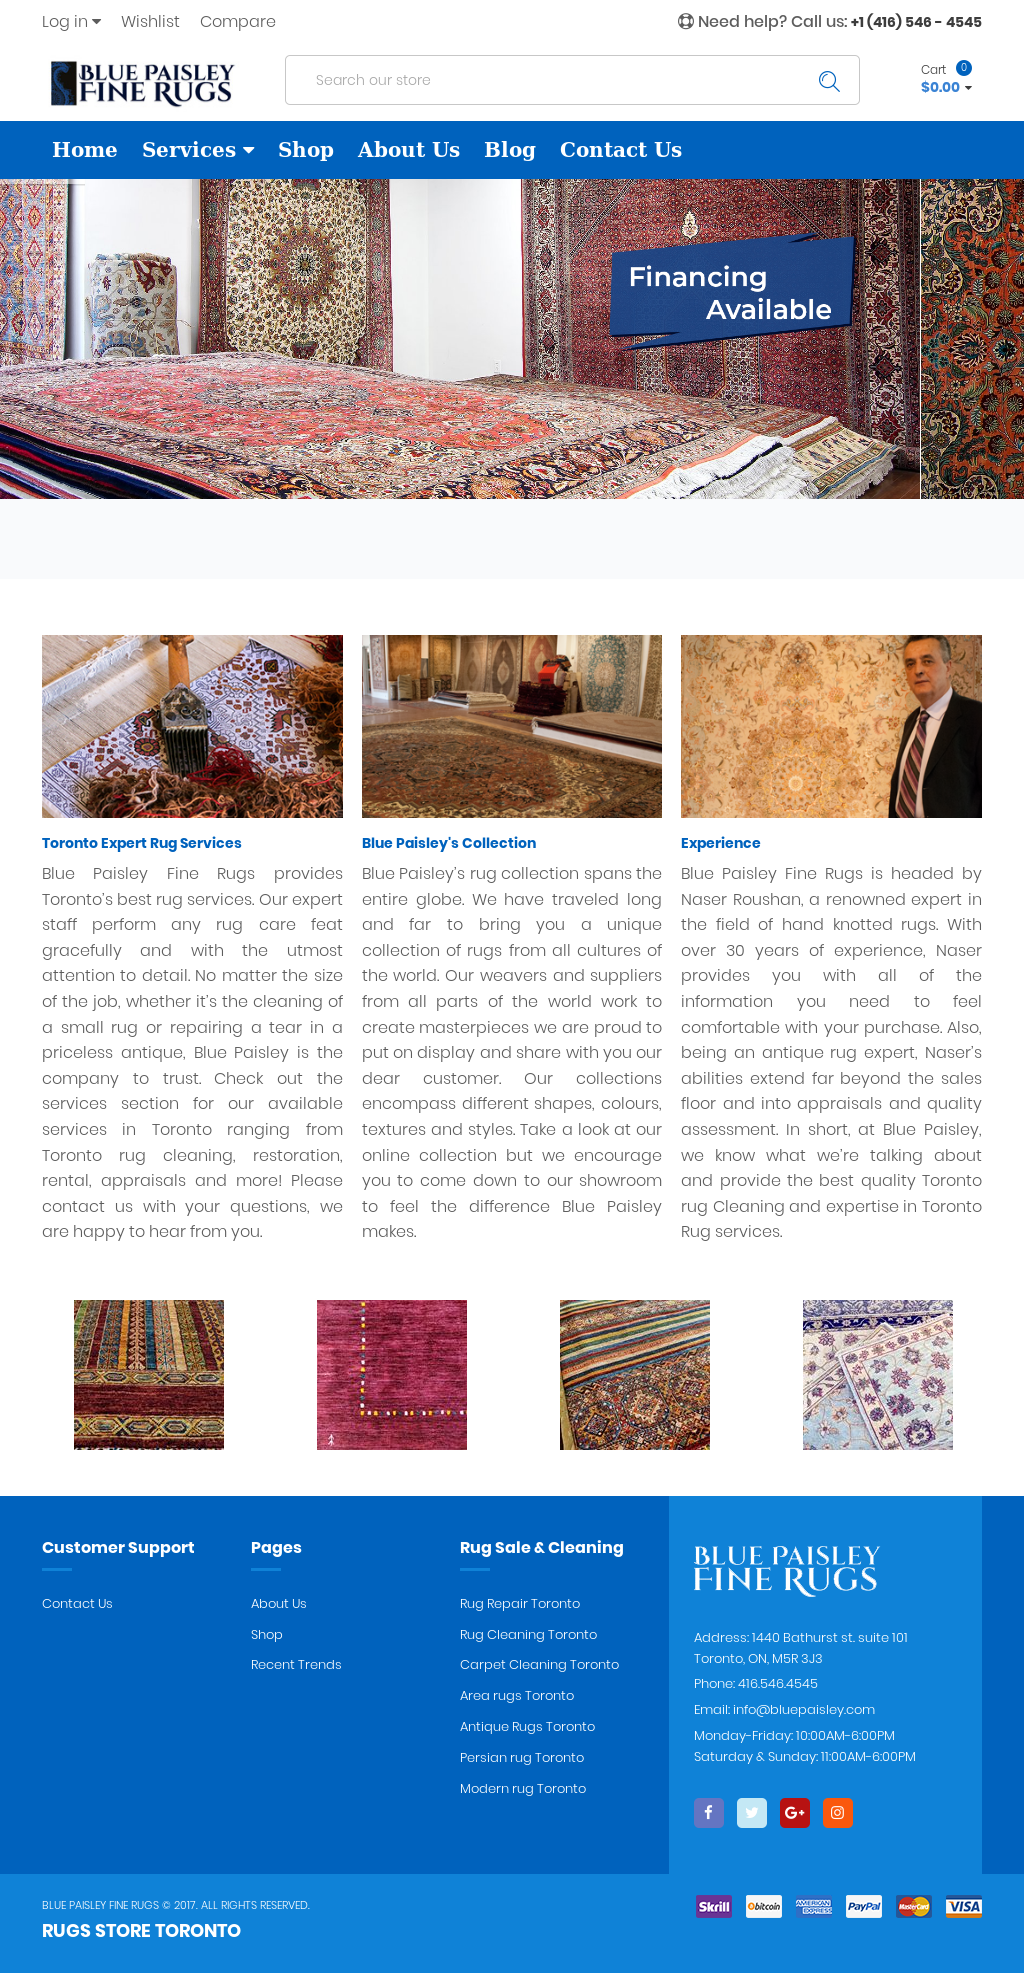 Blue Paisley Fine Rugs Website History